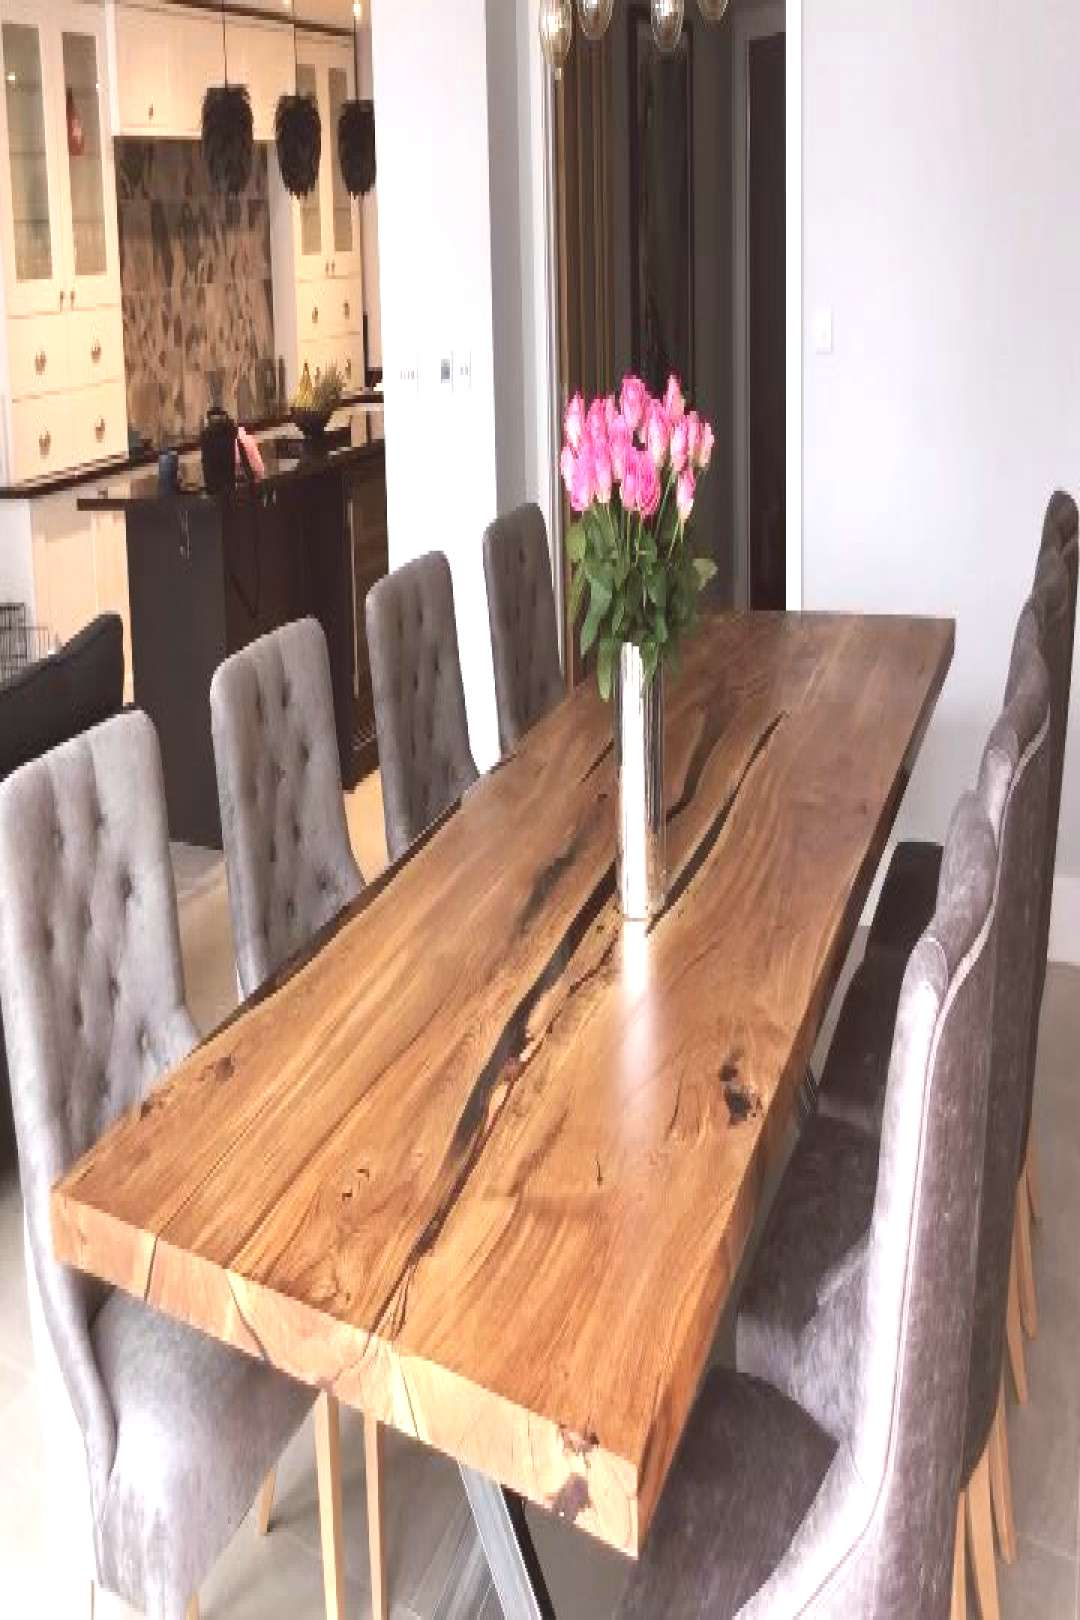 Large English Oak Dining Table by Earthy Timber UK Earthy - Refined English Oak Dining Table 3000x1